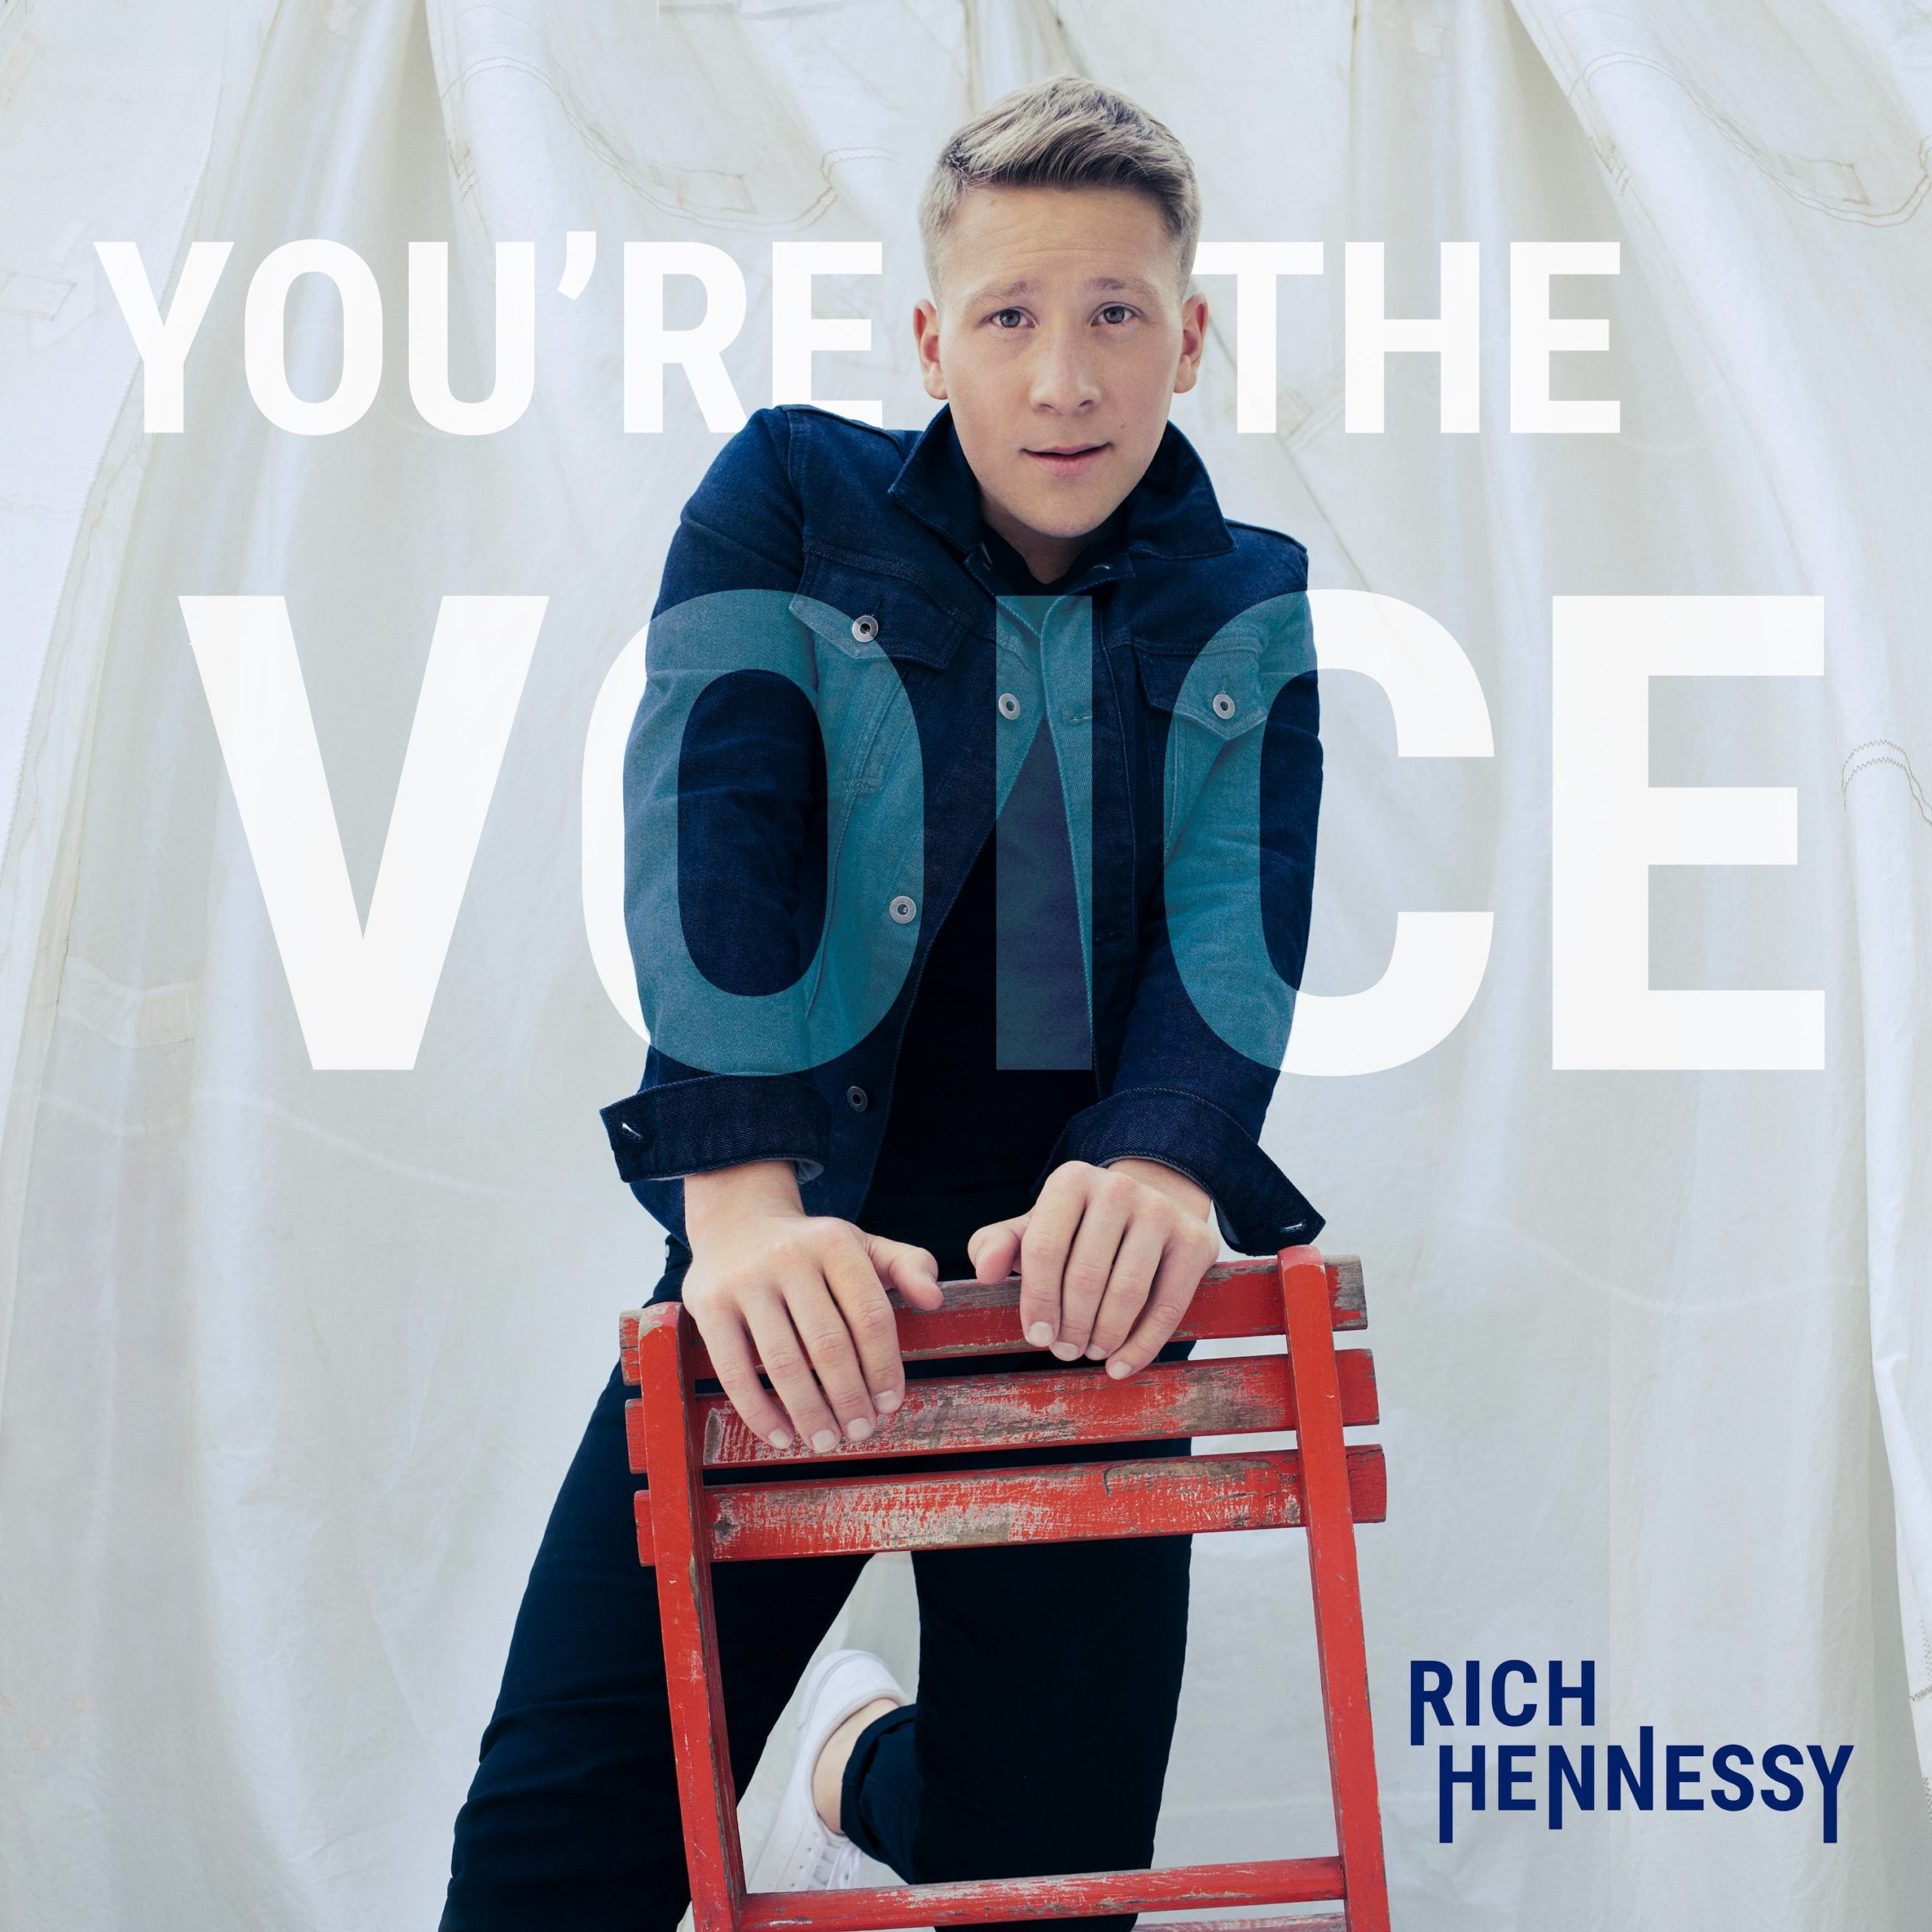 """Rich Hennessy Puts Out a Call to Action with His """"You're The Voice"""" Video [Premiere]"""